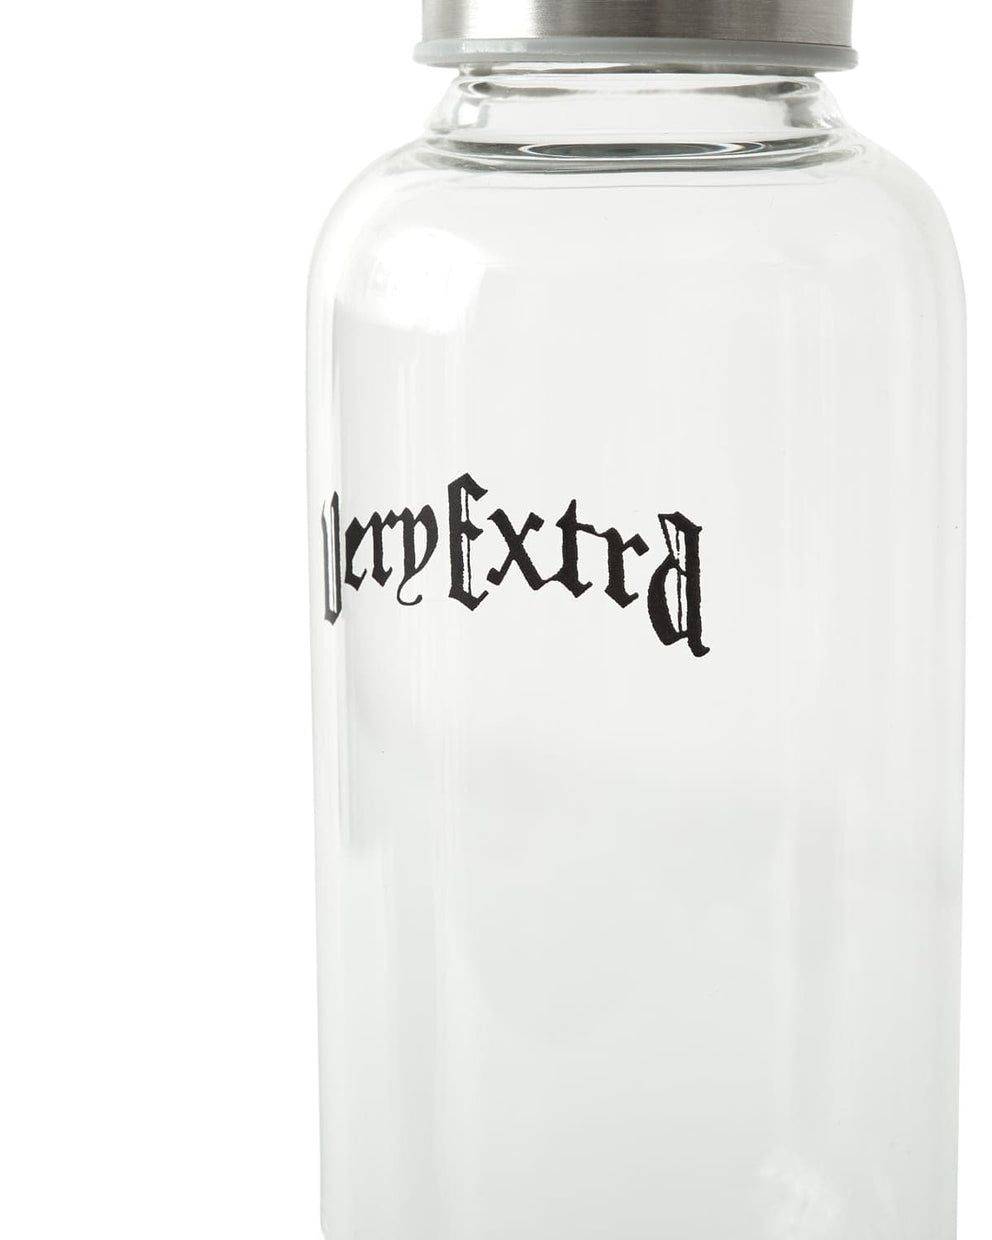 'Very Extra' Crystal Quartz Water Bottle - 16oz